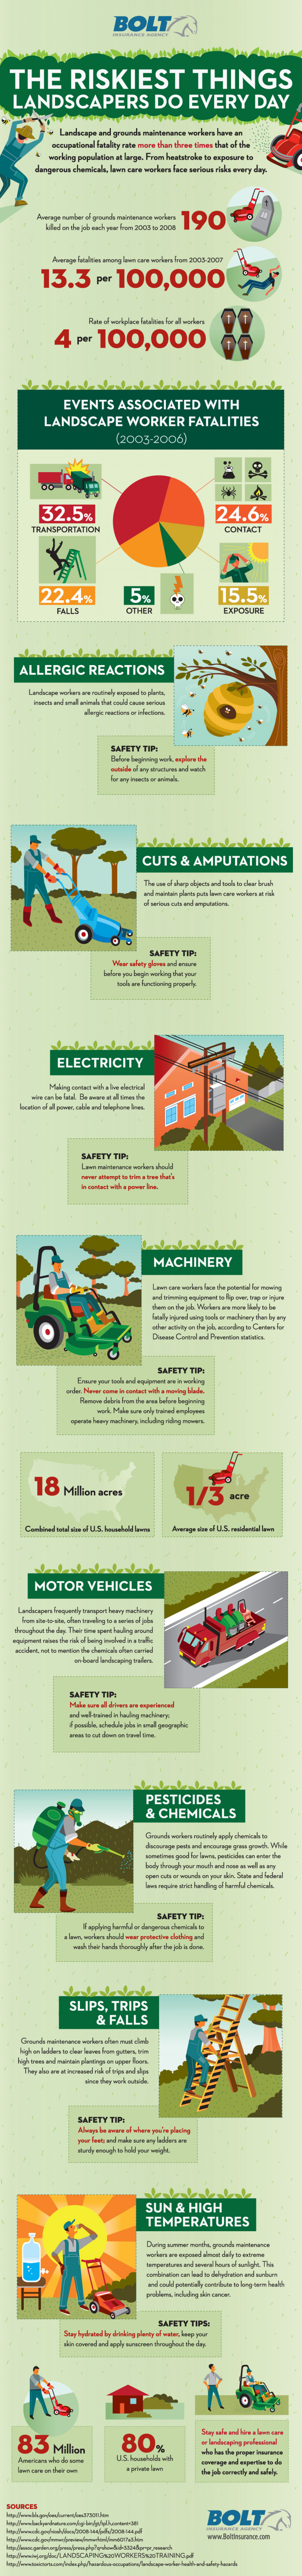 Riskiest things landscapers and lawn care professionals do for Lawn care professionals